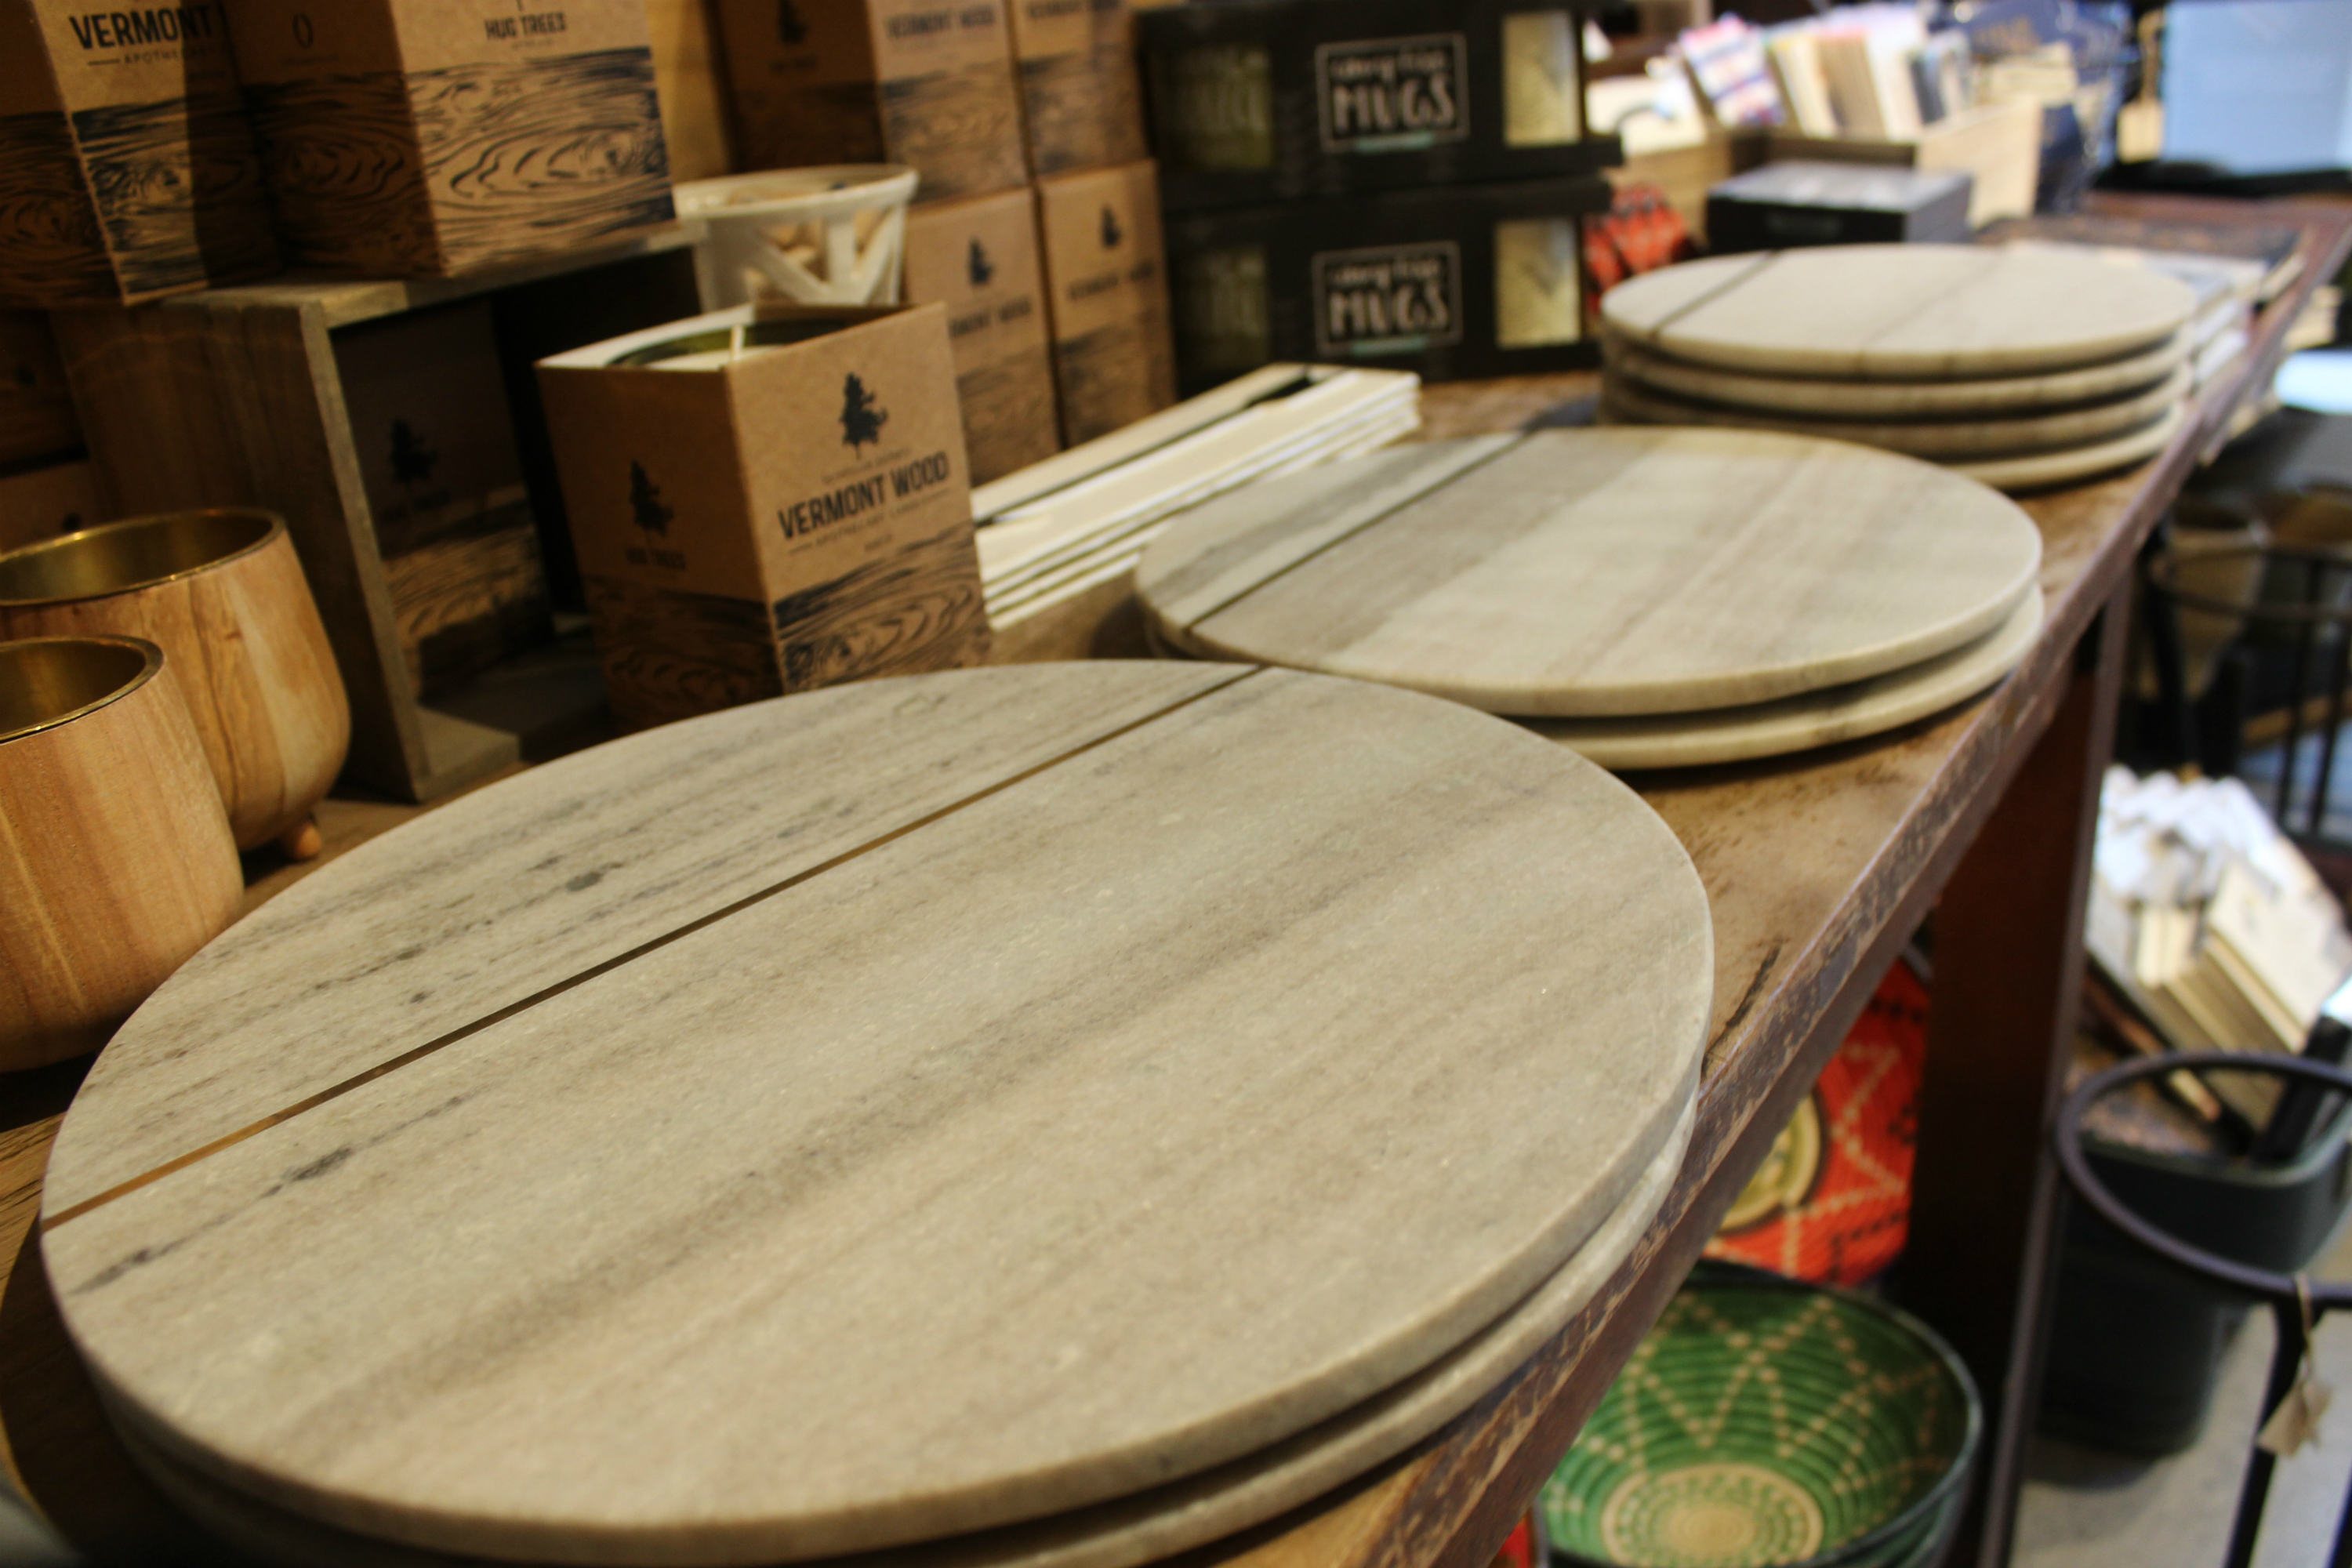 We Re Also A Big Fan Of The S Aragon Round Marble Cheese Boards 34 95 49 Which Are Sure To Impress Aspiring Cook In Your Life